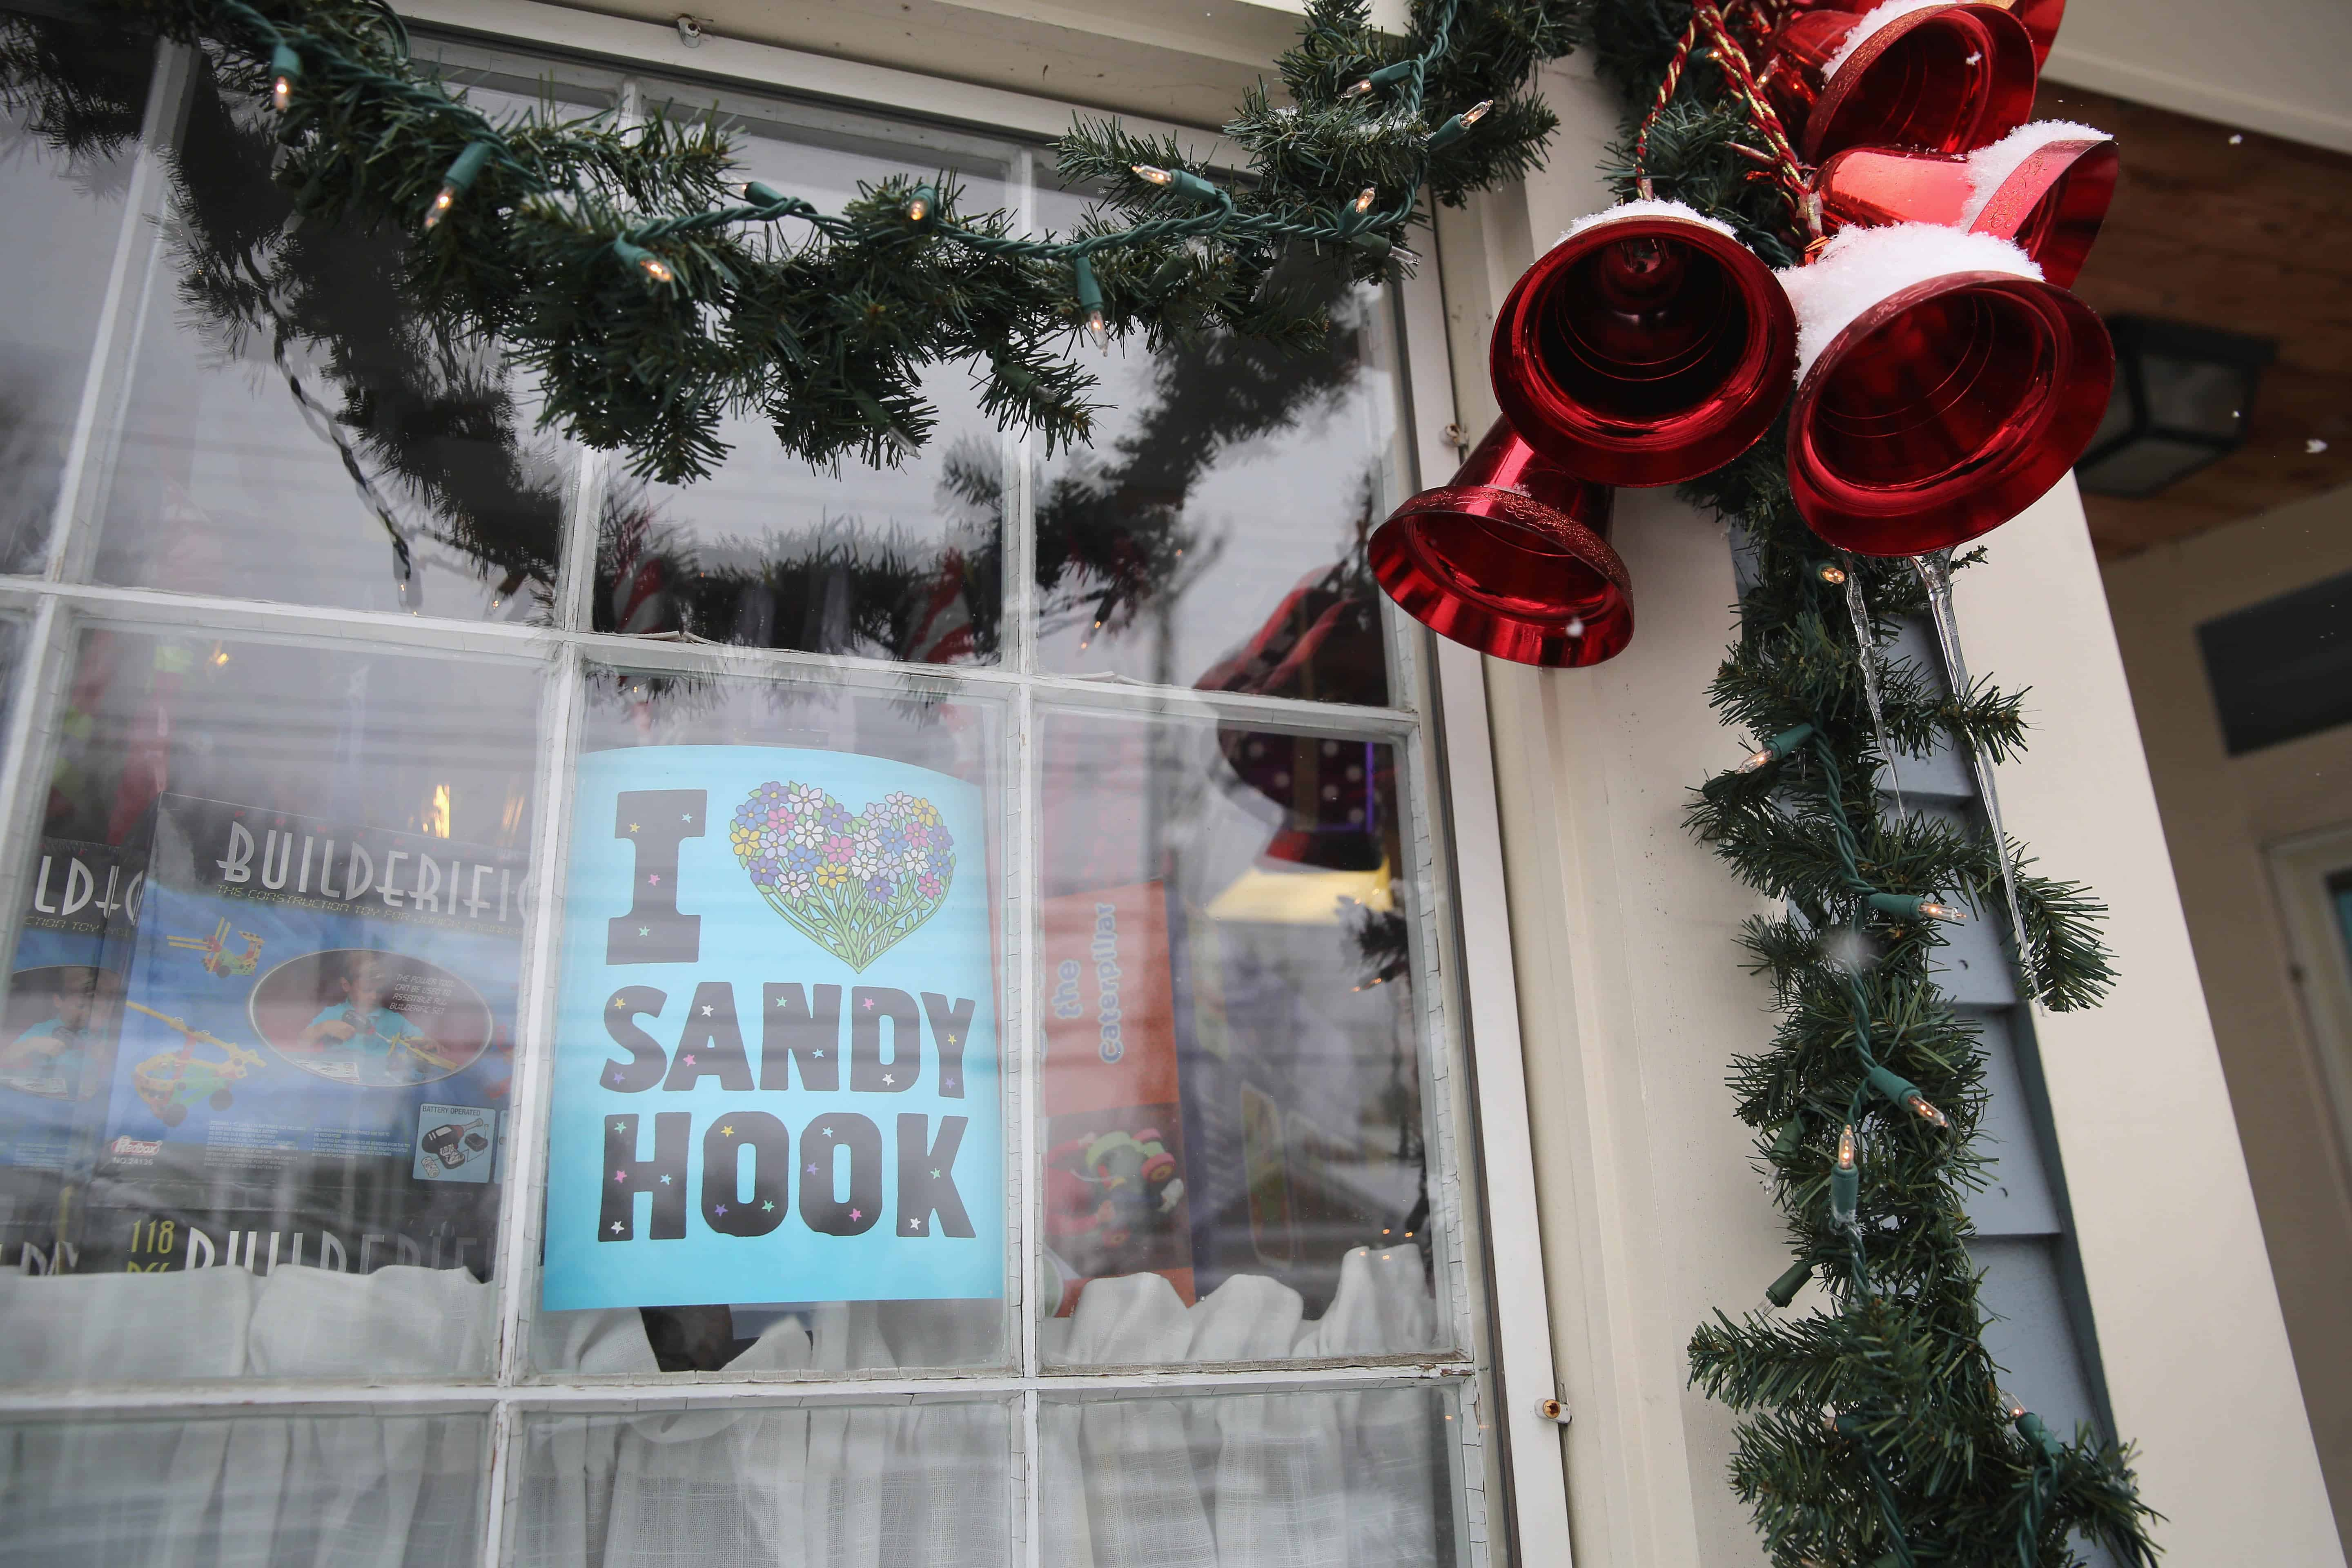 Newtown ct taking down christmas decorations - Us Families Of Sandy Hook Massacre Victims Sue Gunmaker The Tico Times